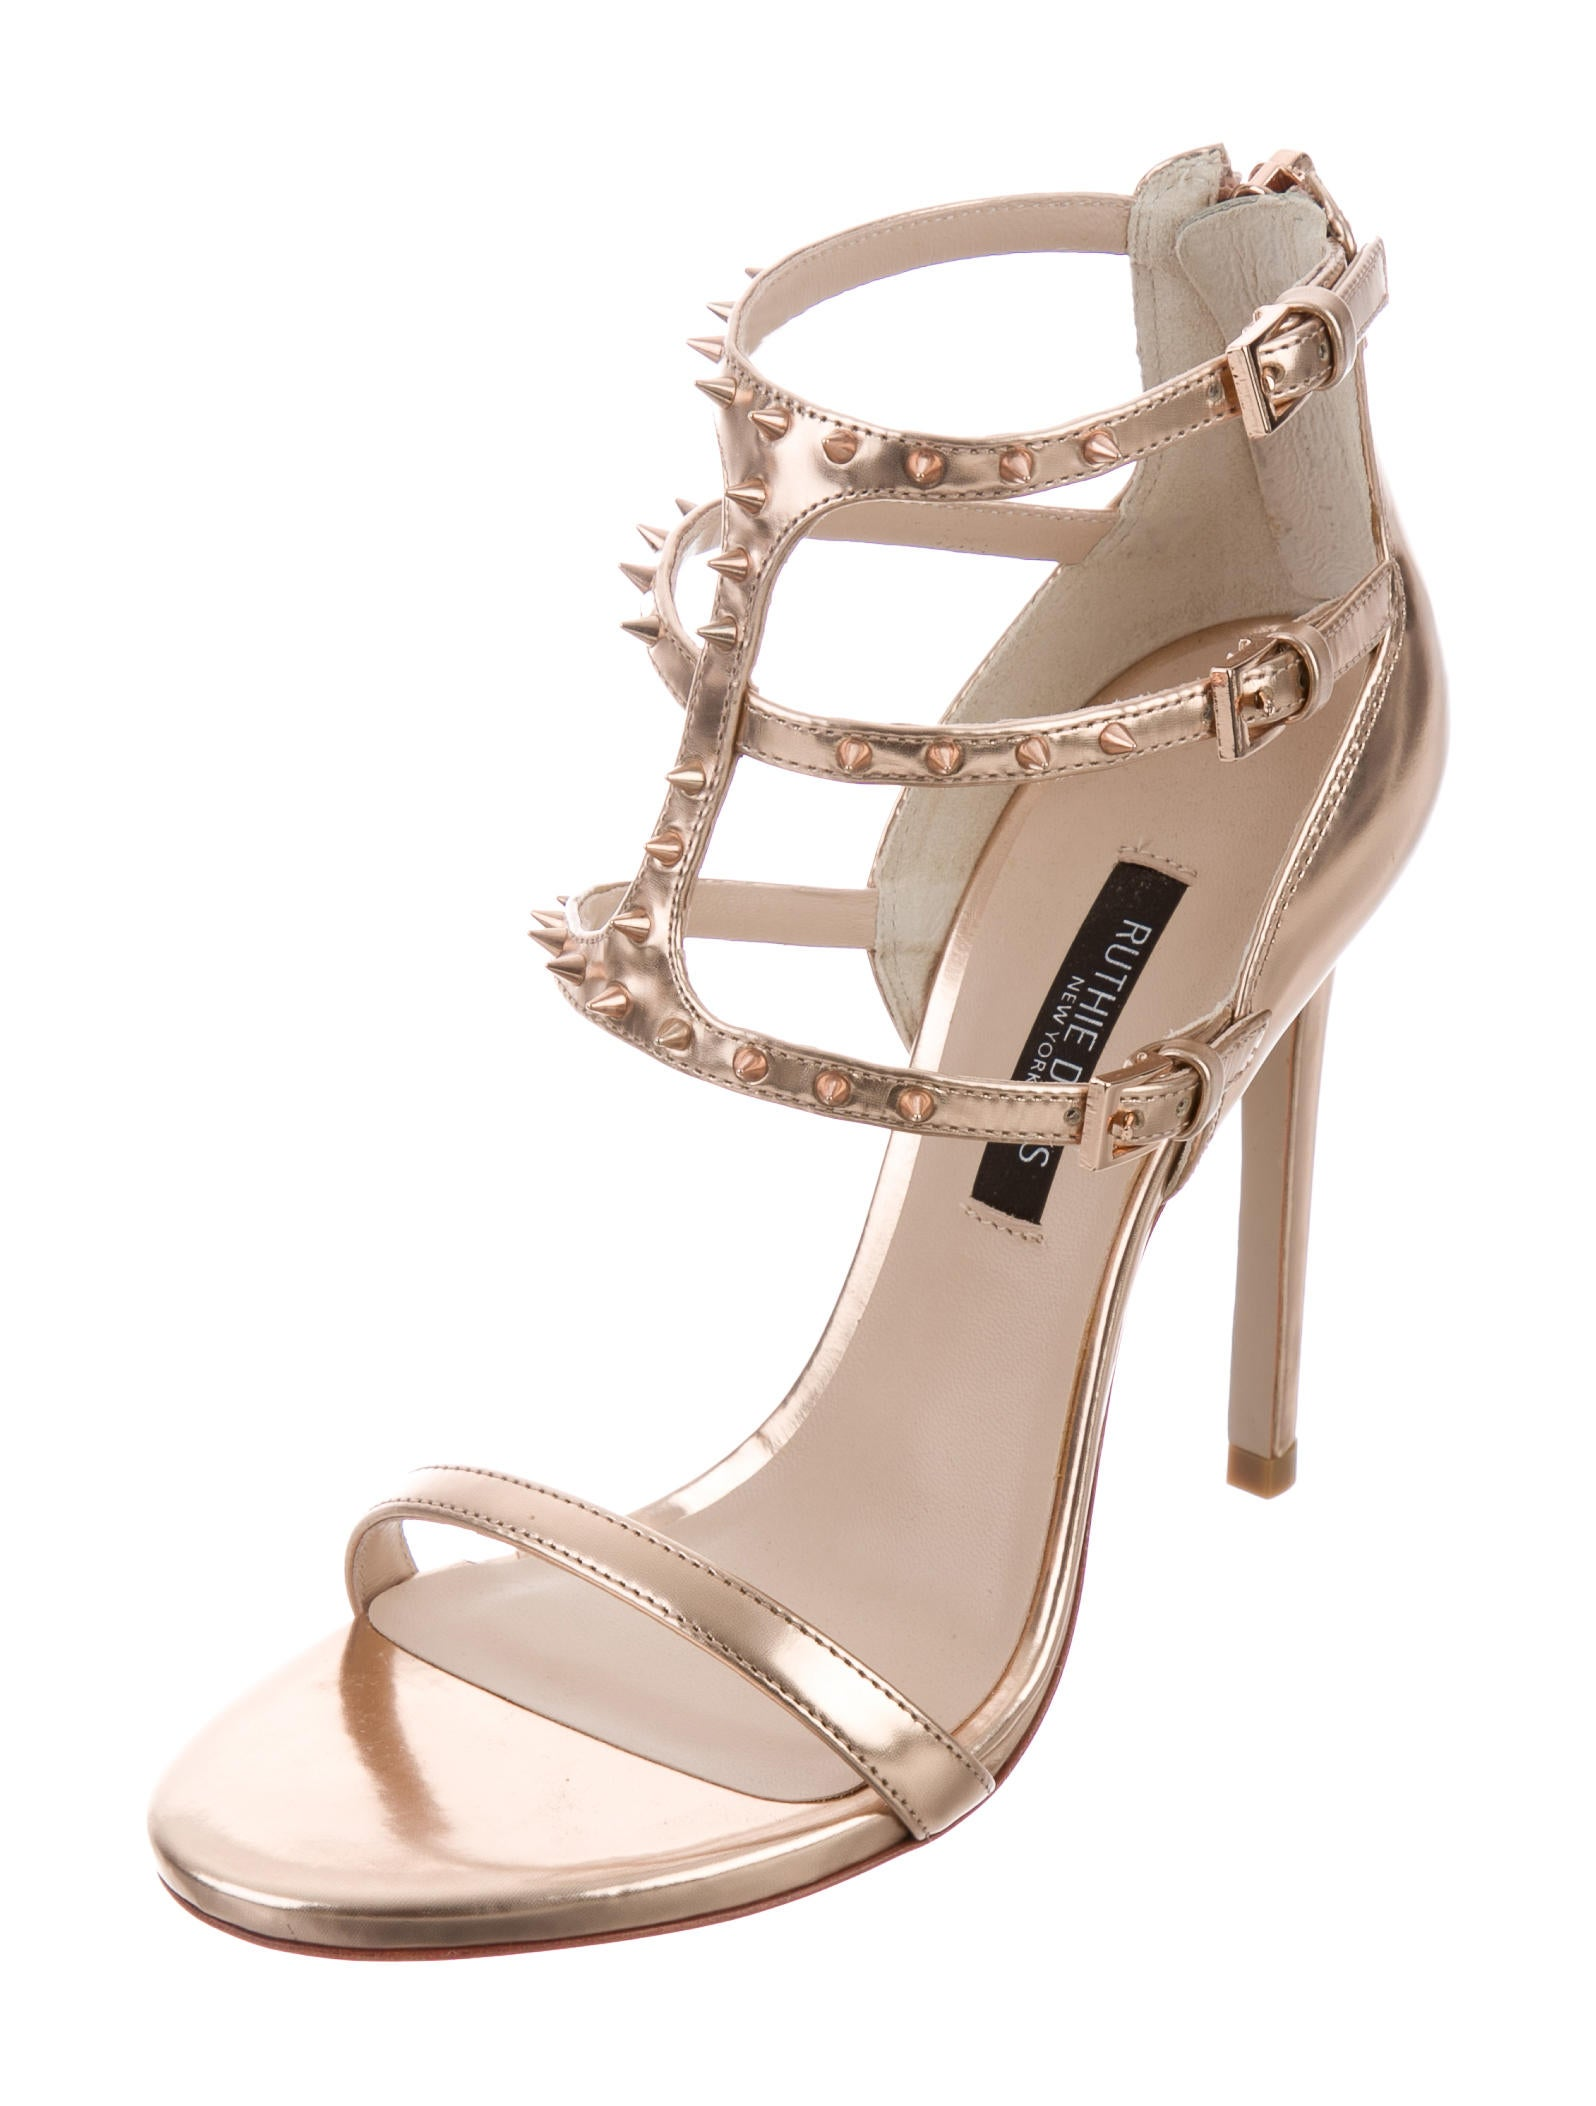 Ruthie Davis Cupid Spiked Sandals outlet the cheapest outlet limited edition collections online cheap price for sale discount low cost 1bDN0pJA